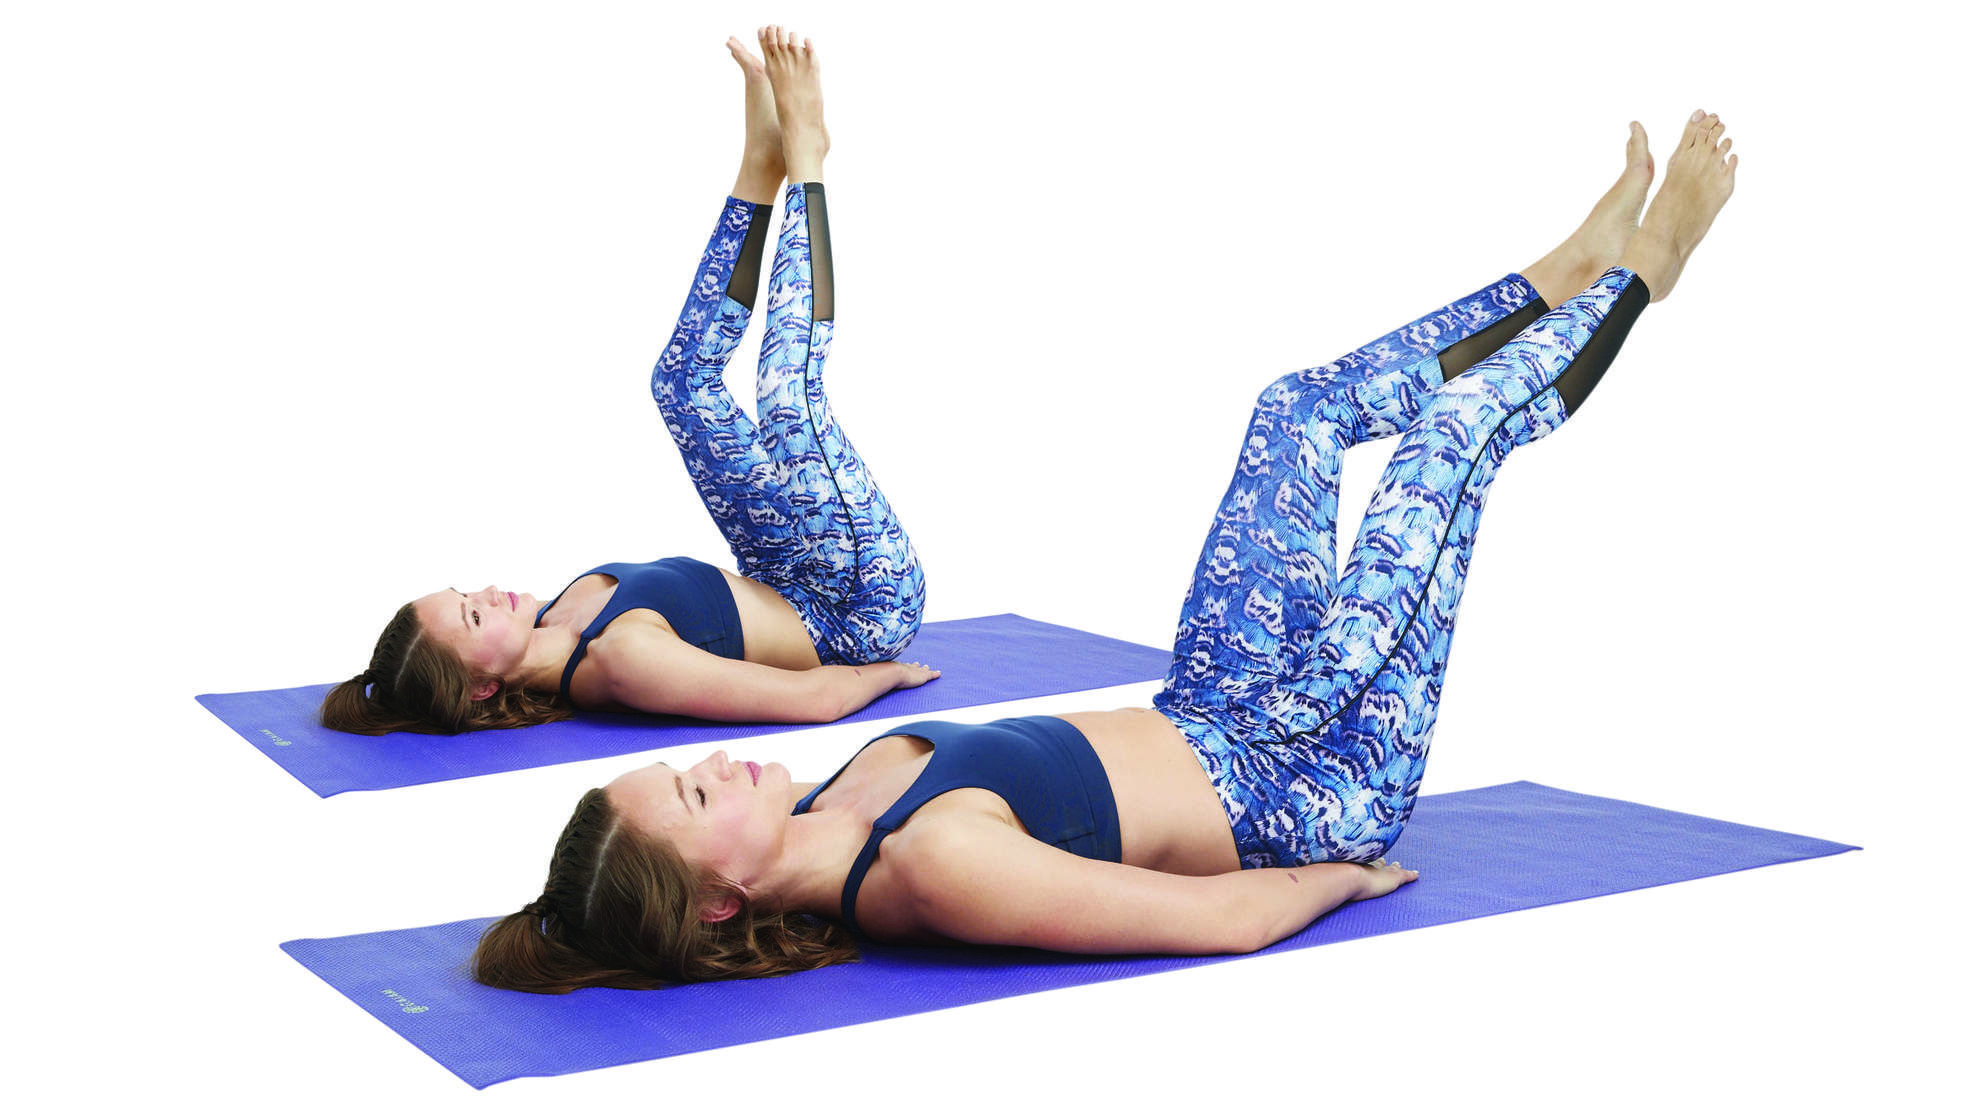 This At-Home Pilates Routine Will Tighten and Tone Your Entire Body #pilatesworkoutroutine